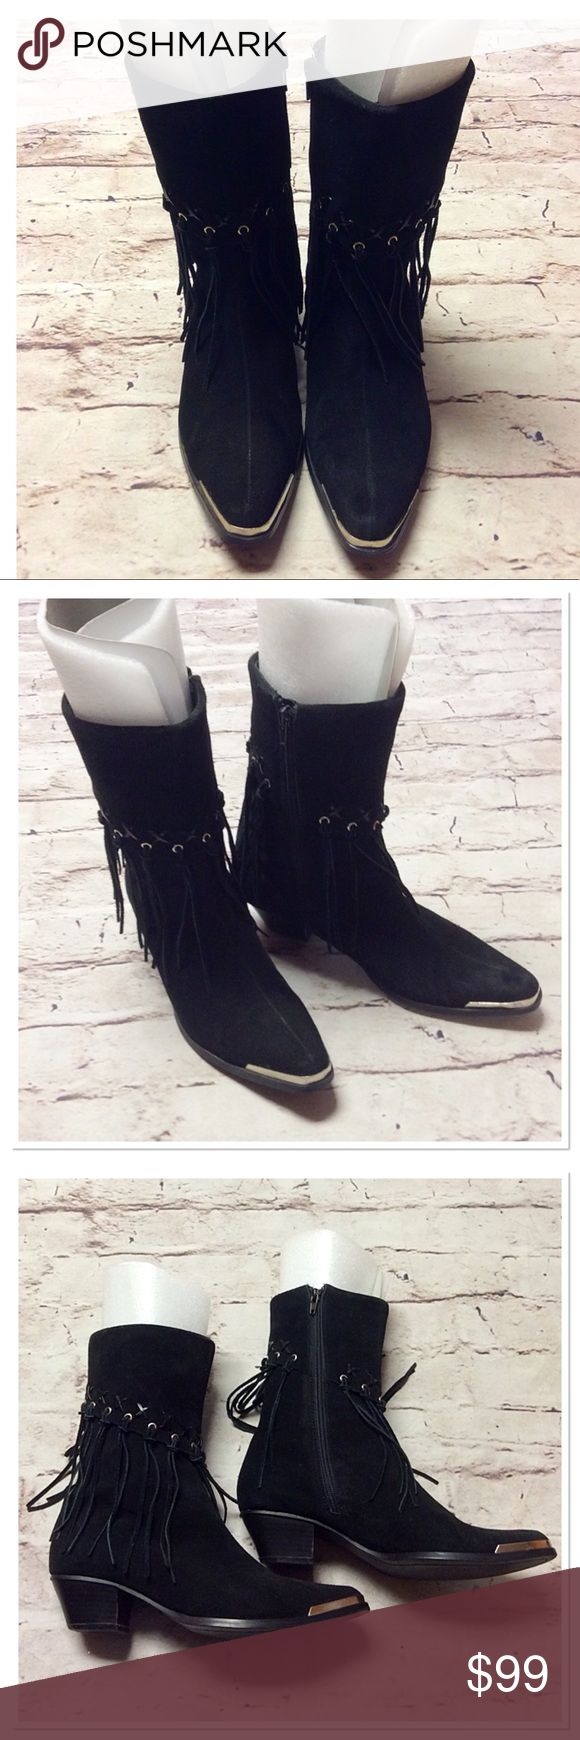 "🎉HP🎉OAK TREE FARMS BLACK SUEDE FRINGE BOOTS These are gorgeous boots with lots of fringe detail, side zip, Cuban 2"" heel and a silver toe guard. No major issues. A couple of scuffs of the heels and the inside lining has a tear but will not be seen when wearing. They are genuine suede leather!!! Oak Tree Farms Shoes Heeled Boots"